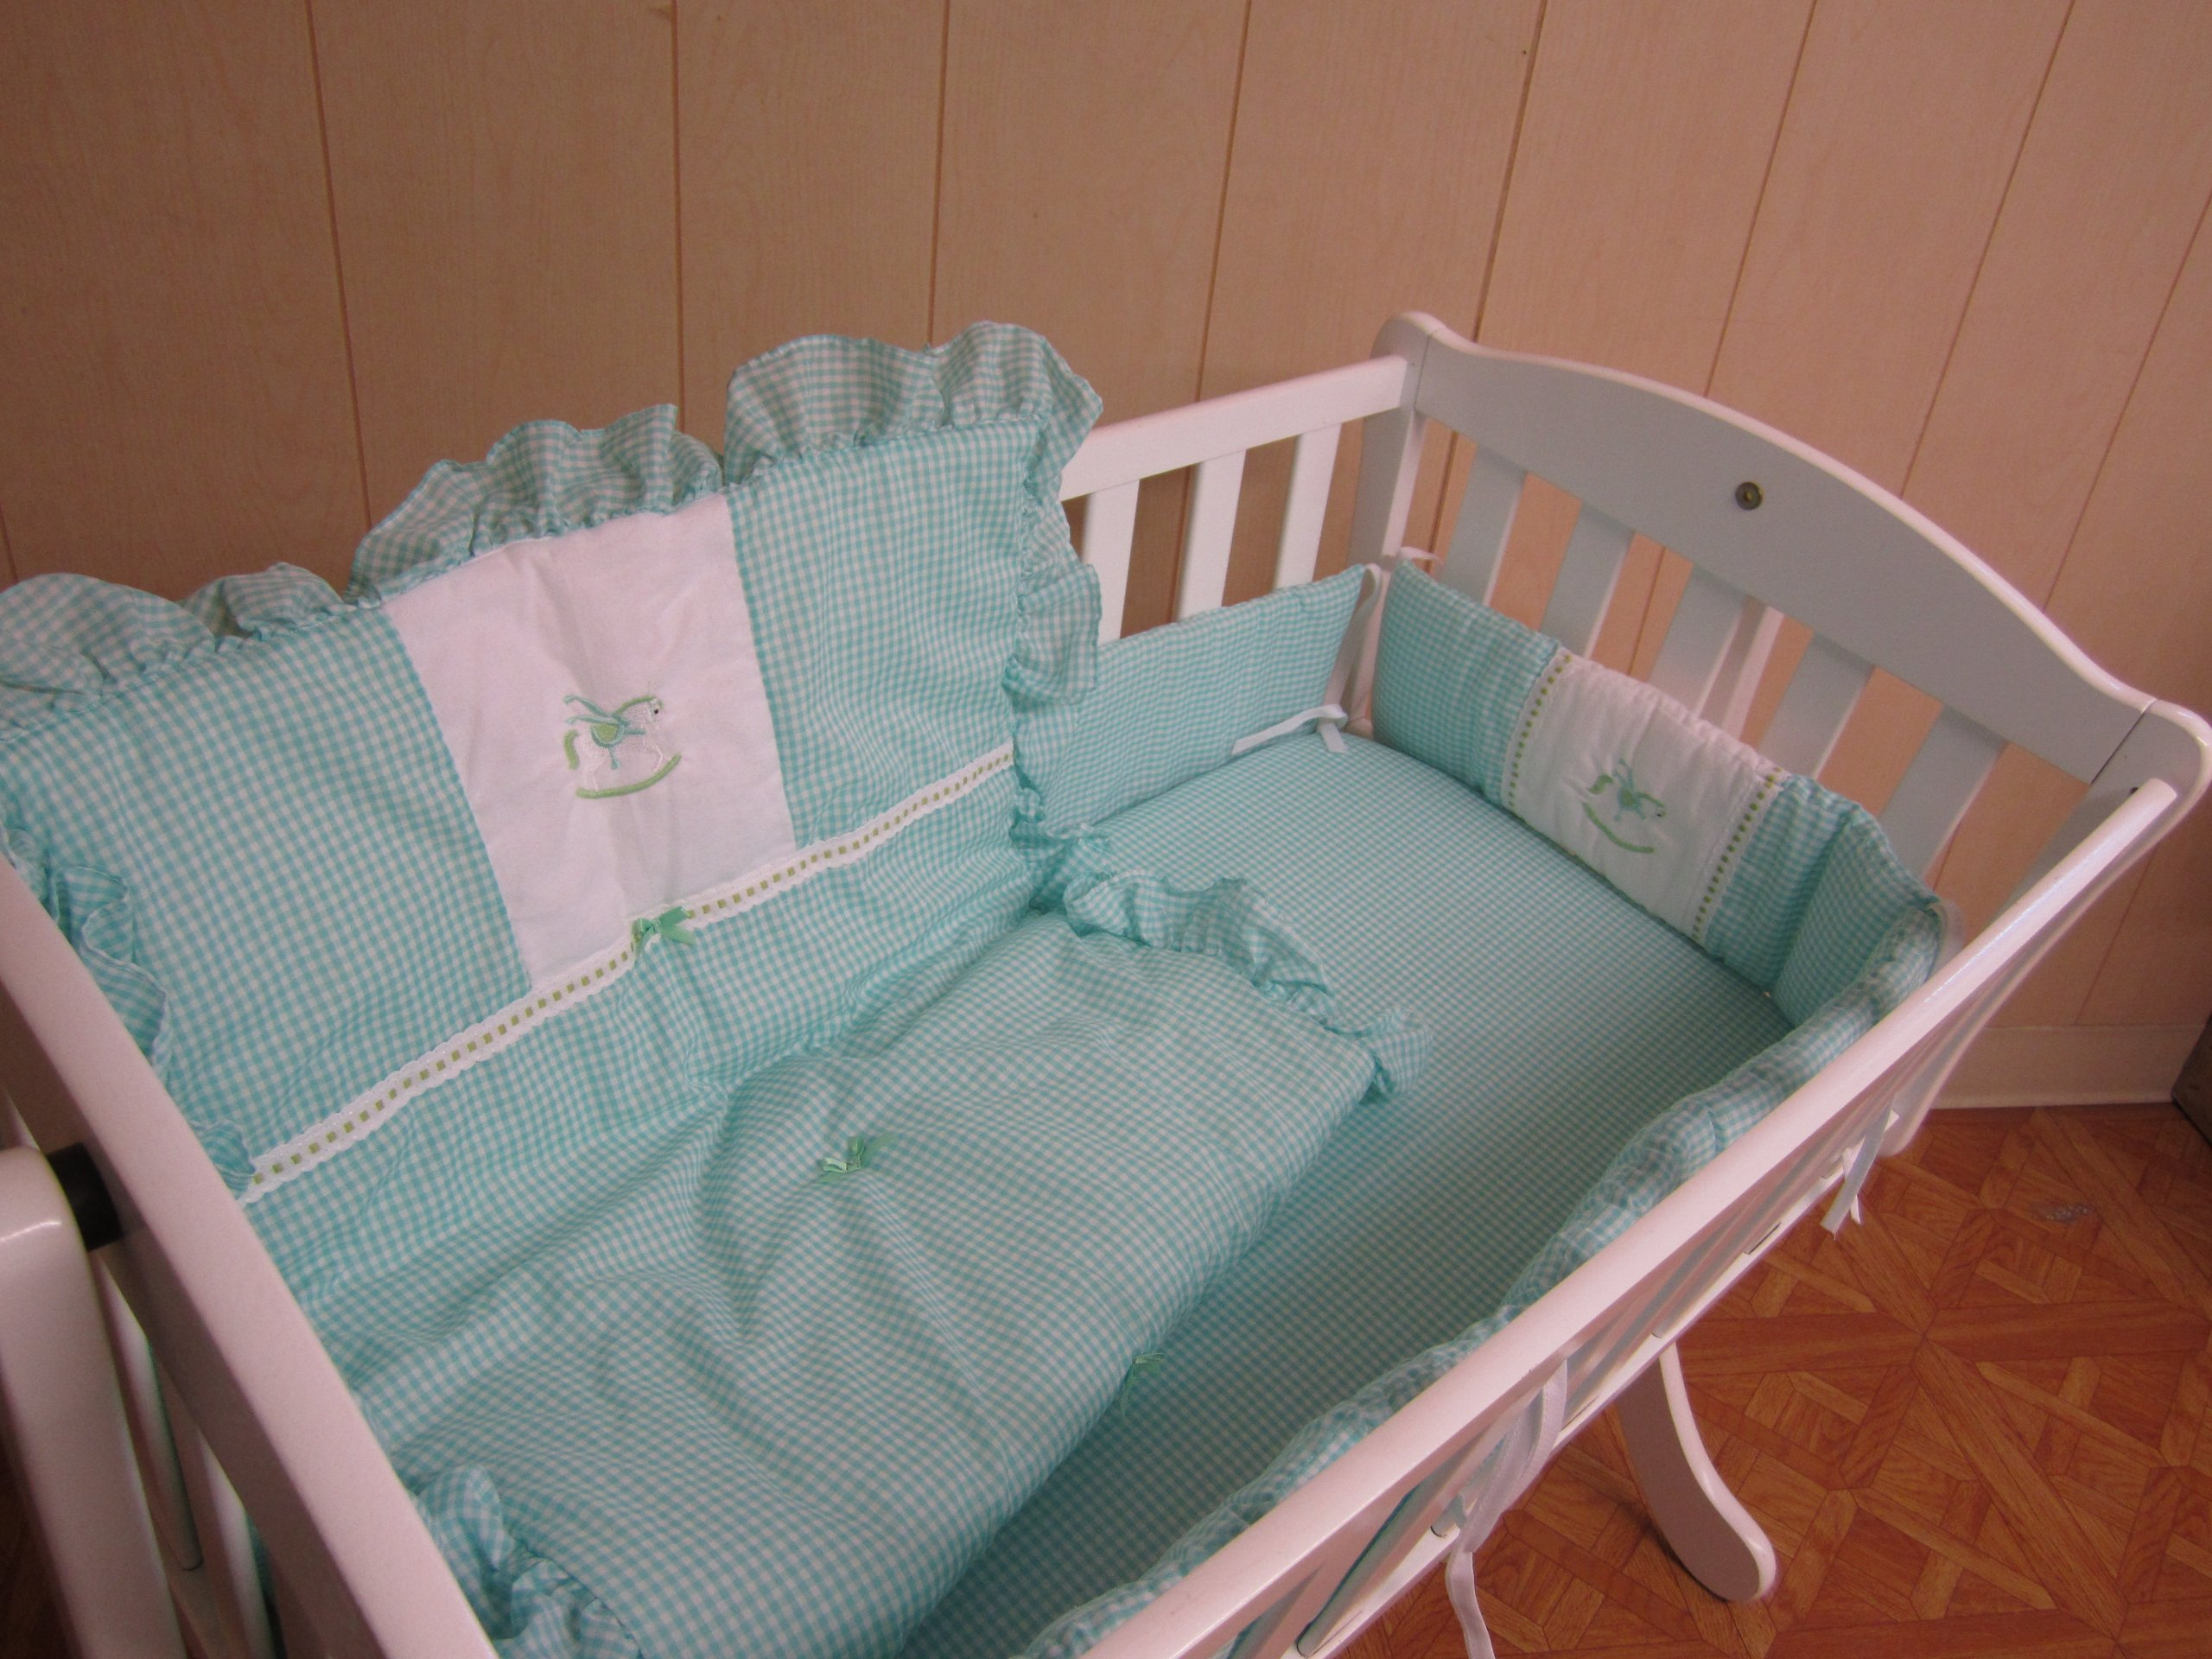 Baby Doll Bedding Gingham with Rocking Horse Applique Cradle Bedding Set, Mint